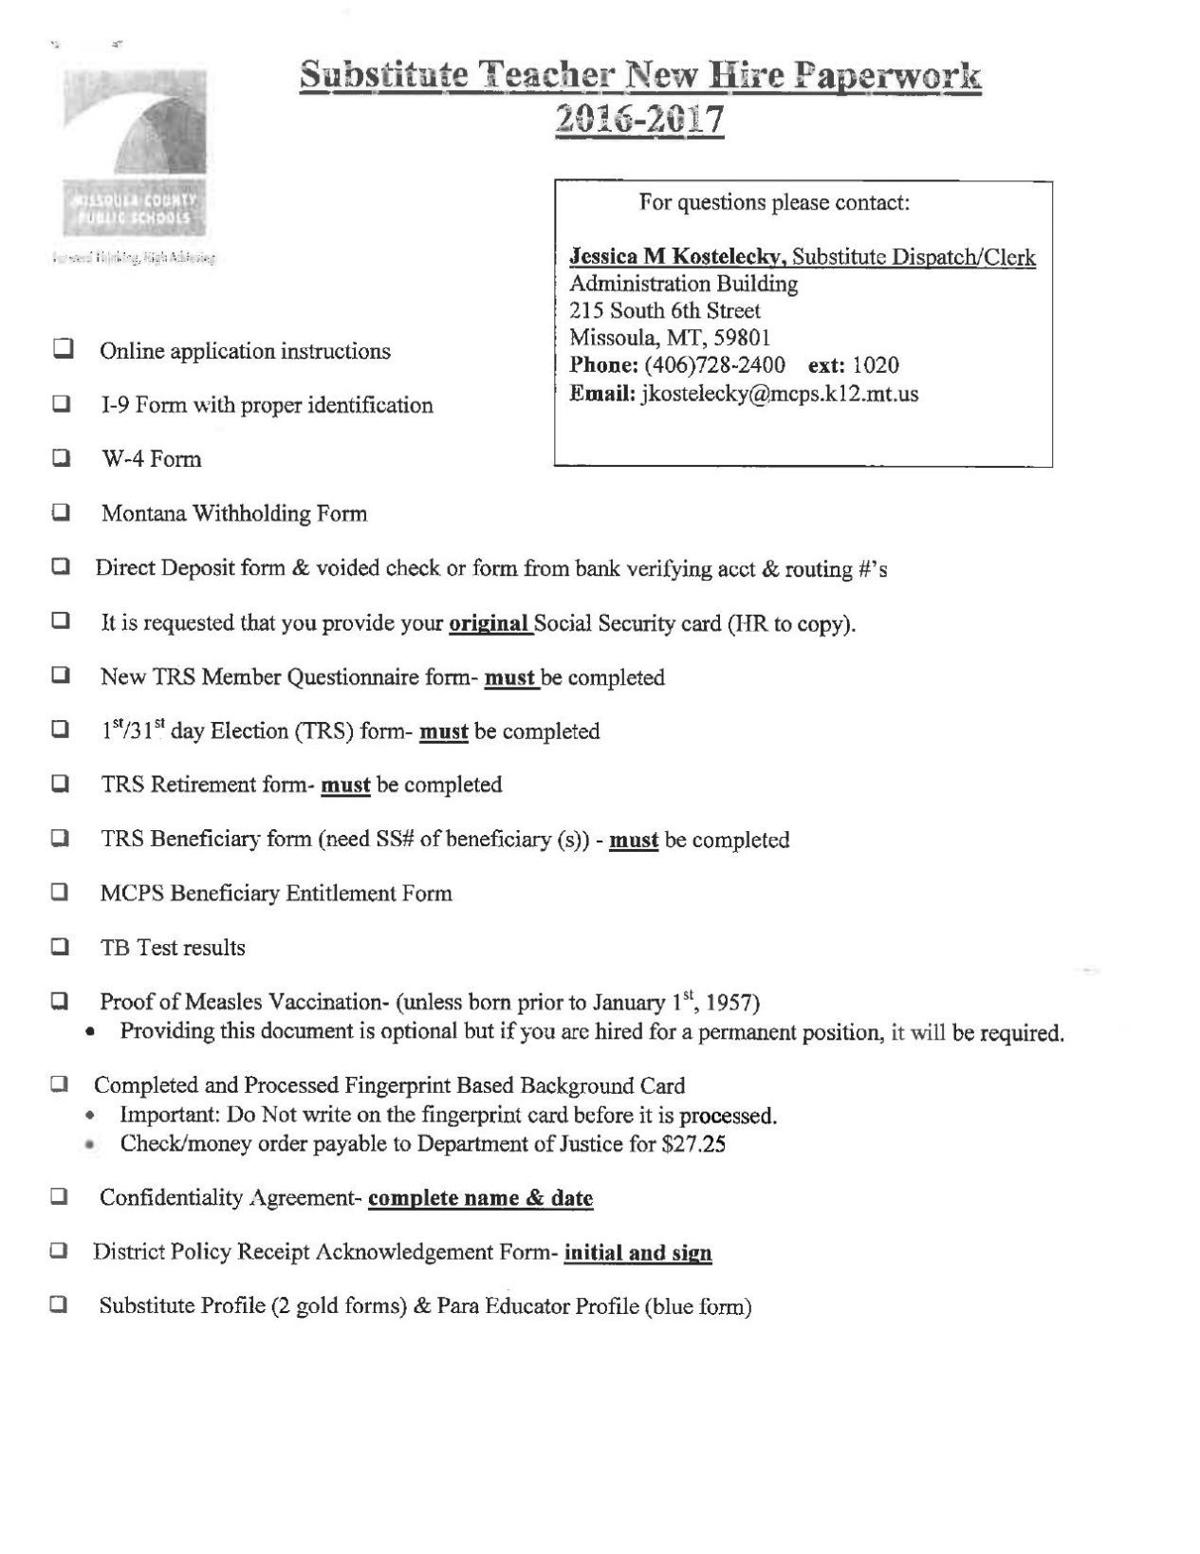 MCPS substitute teacher new hire paperwork, handbook